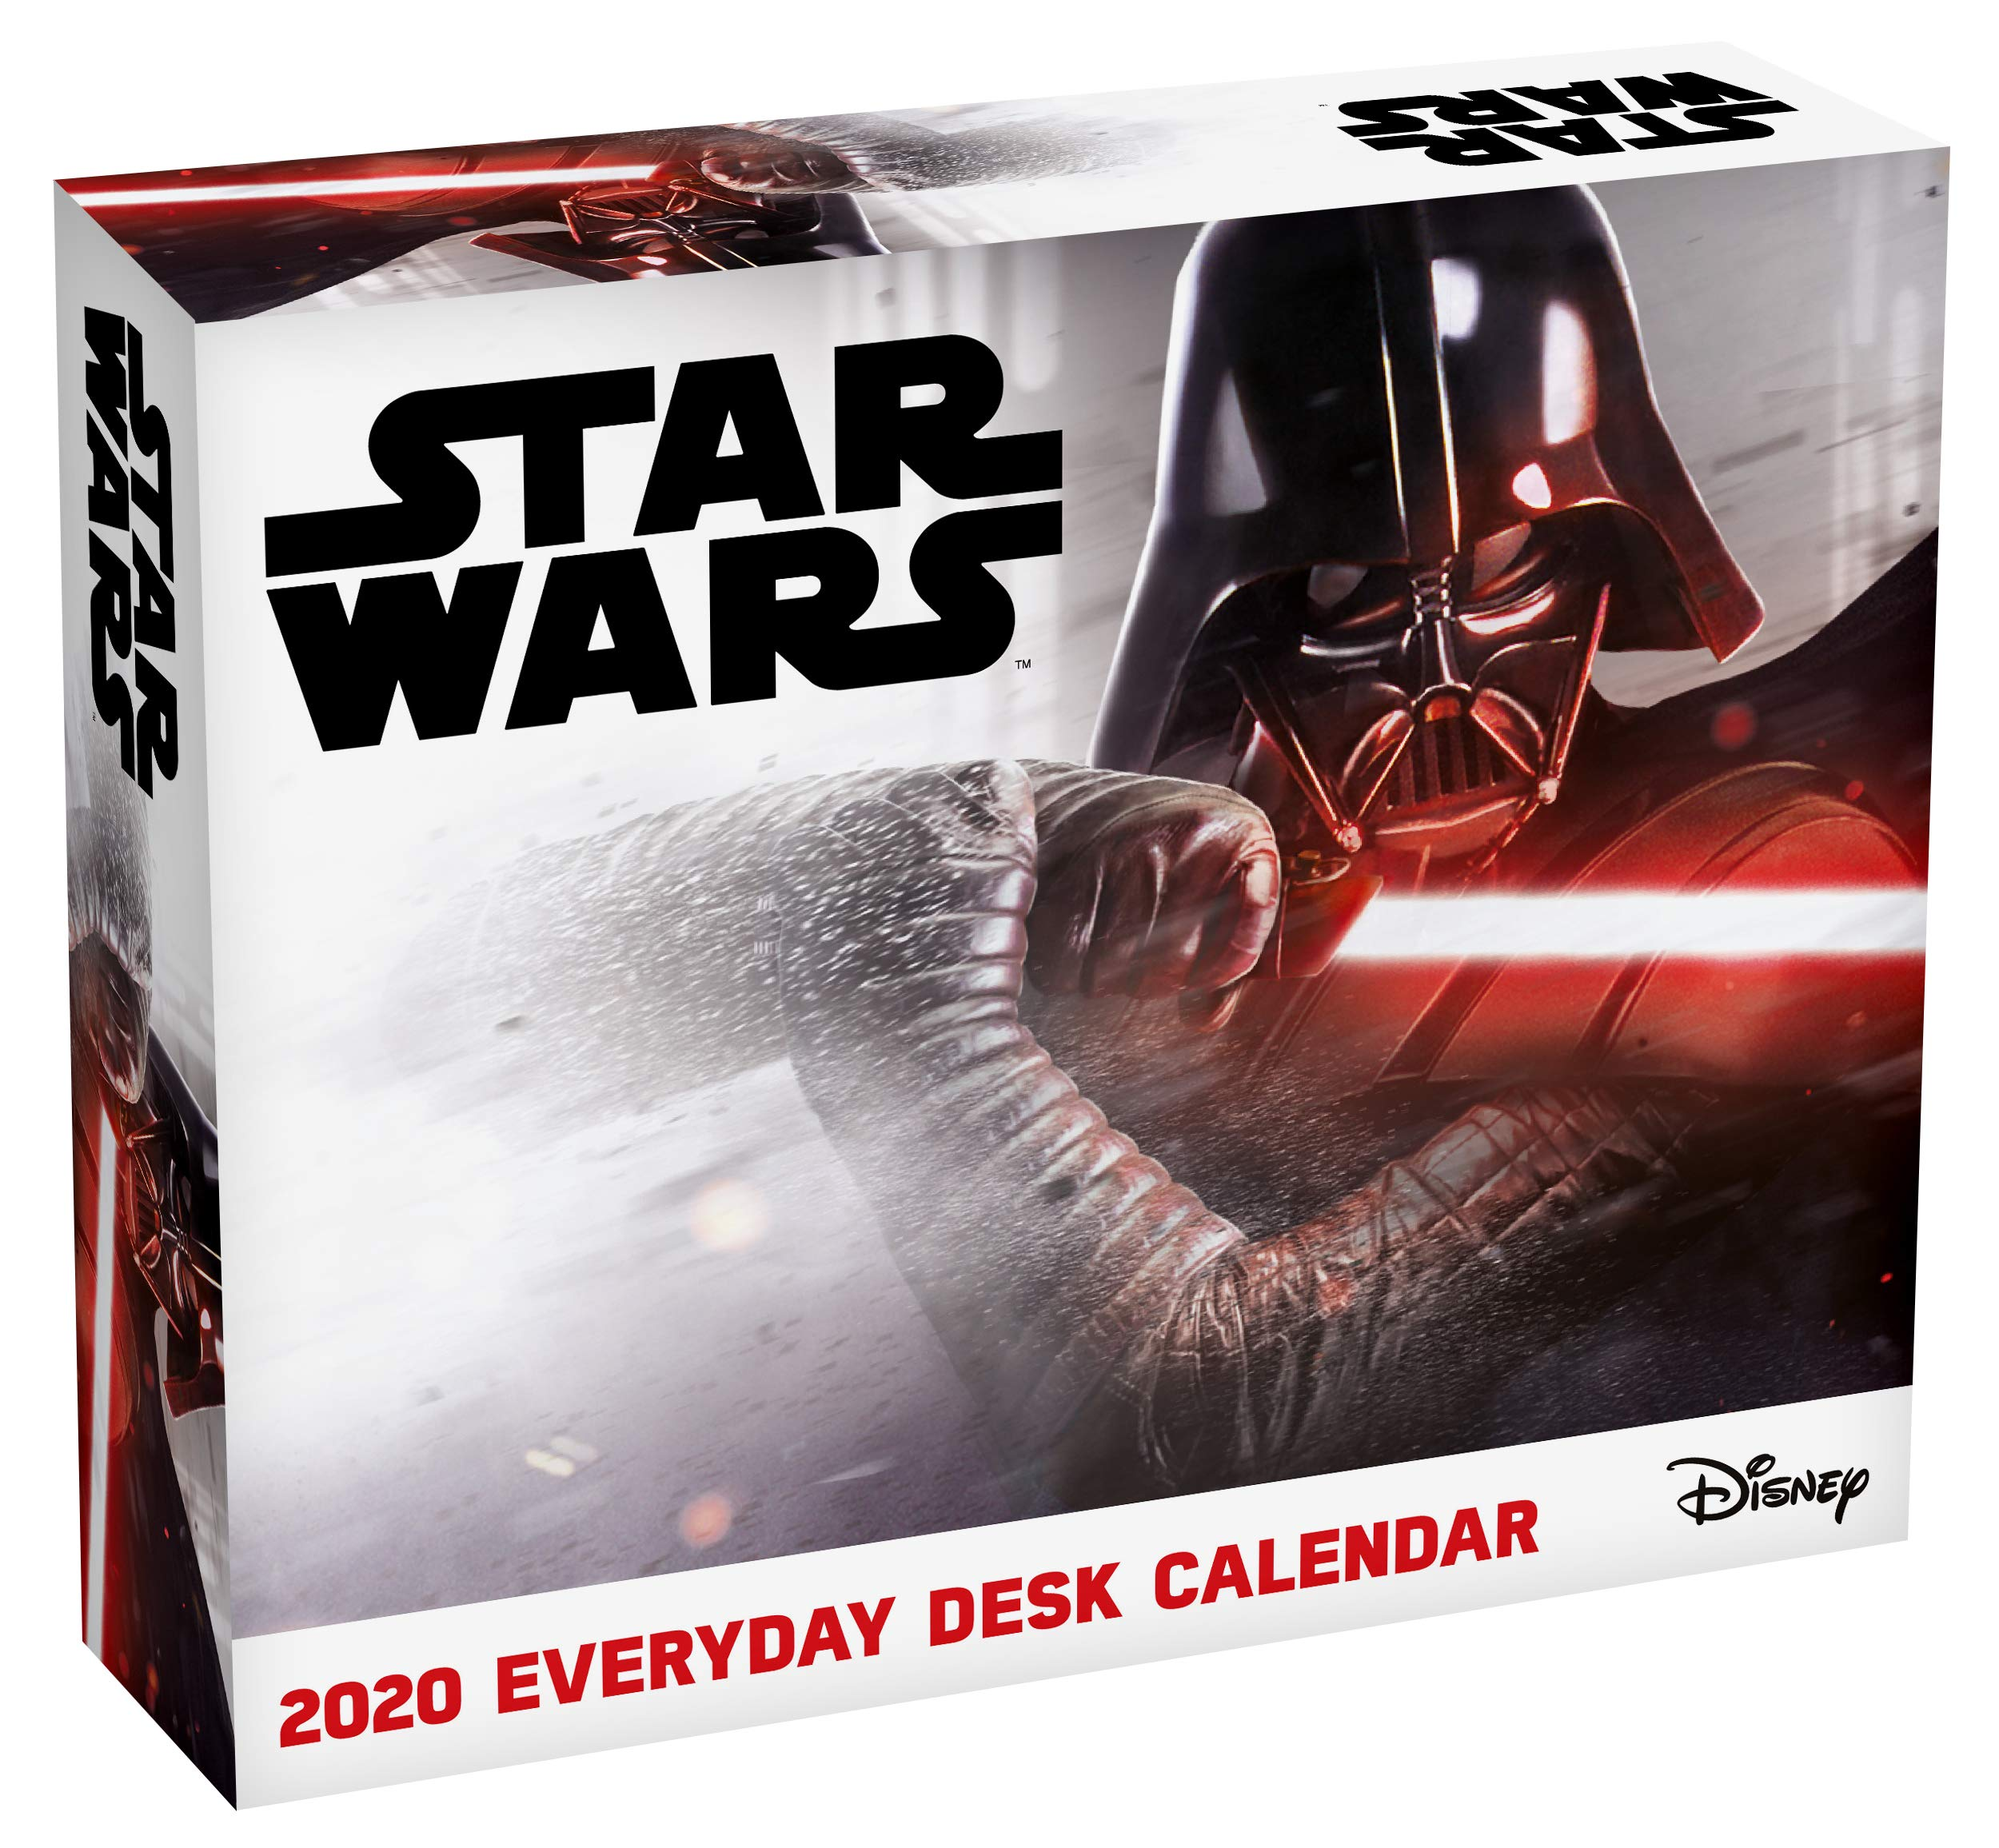 Star Wars 2020 Desk Block Calendar - Official Desk Block Format Calendar by Star Wars